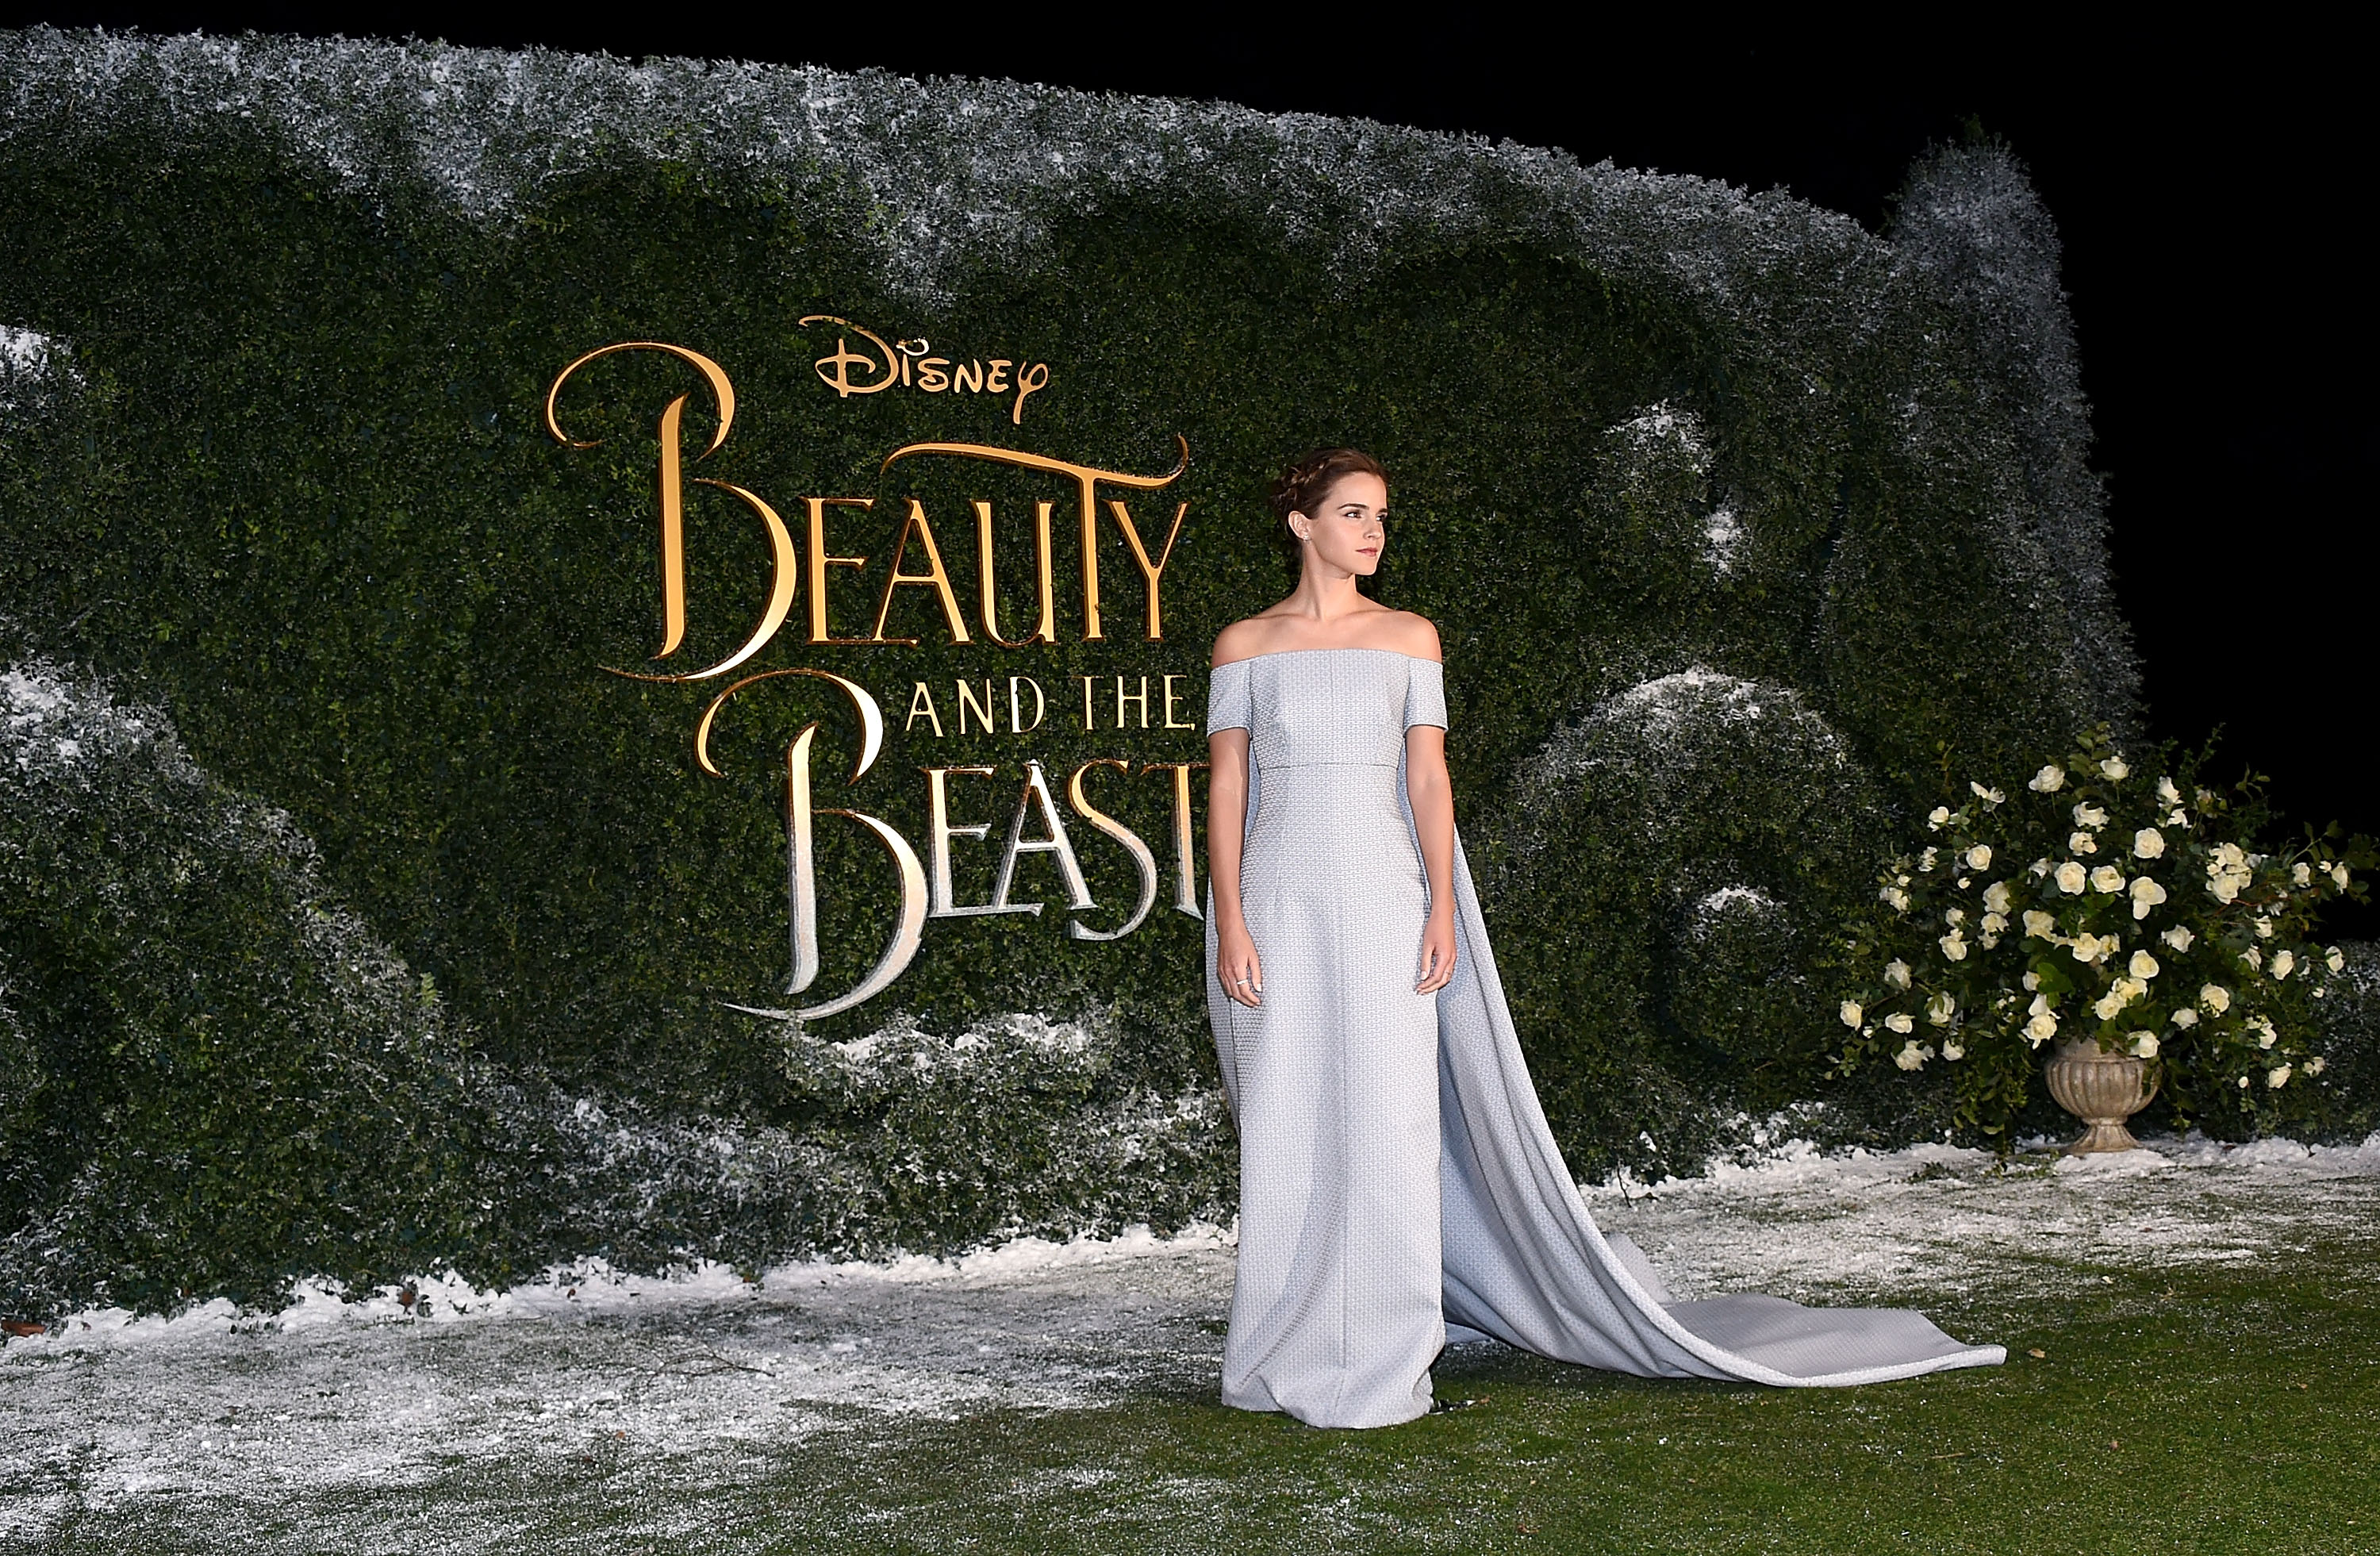 Fashion Beauty Events London: Emma Watson Was A Real-life Princess At The Beauty And The